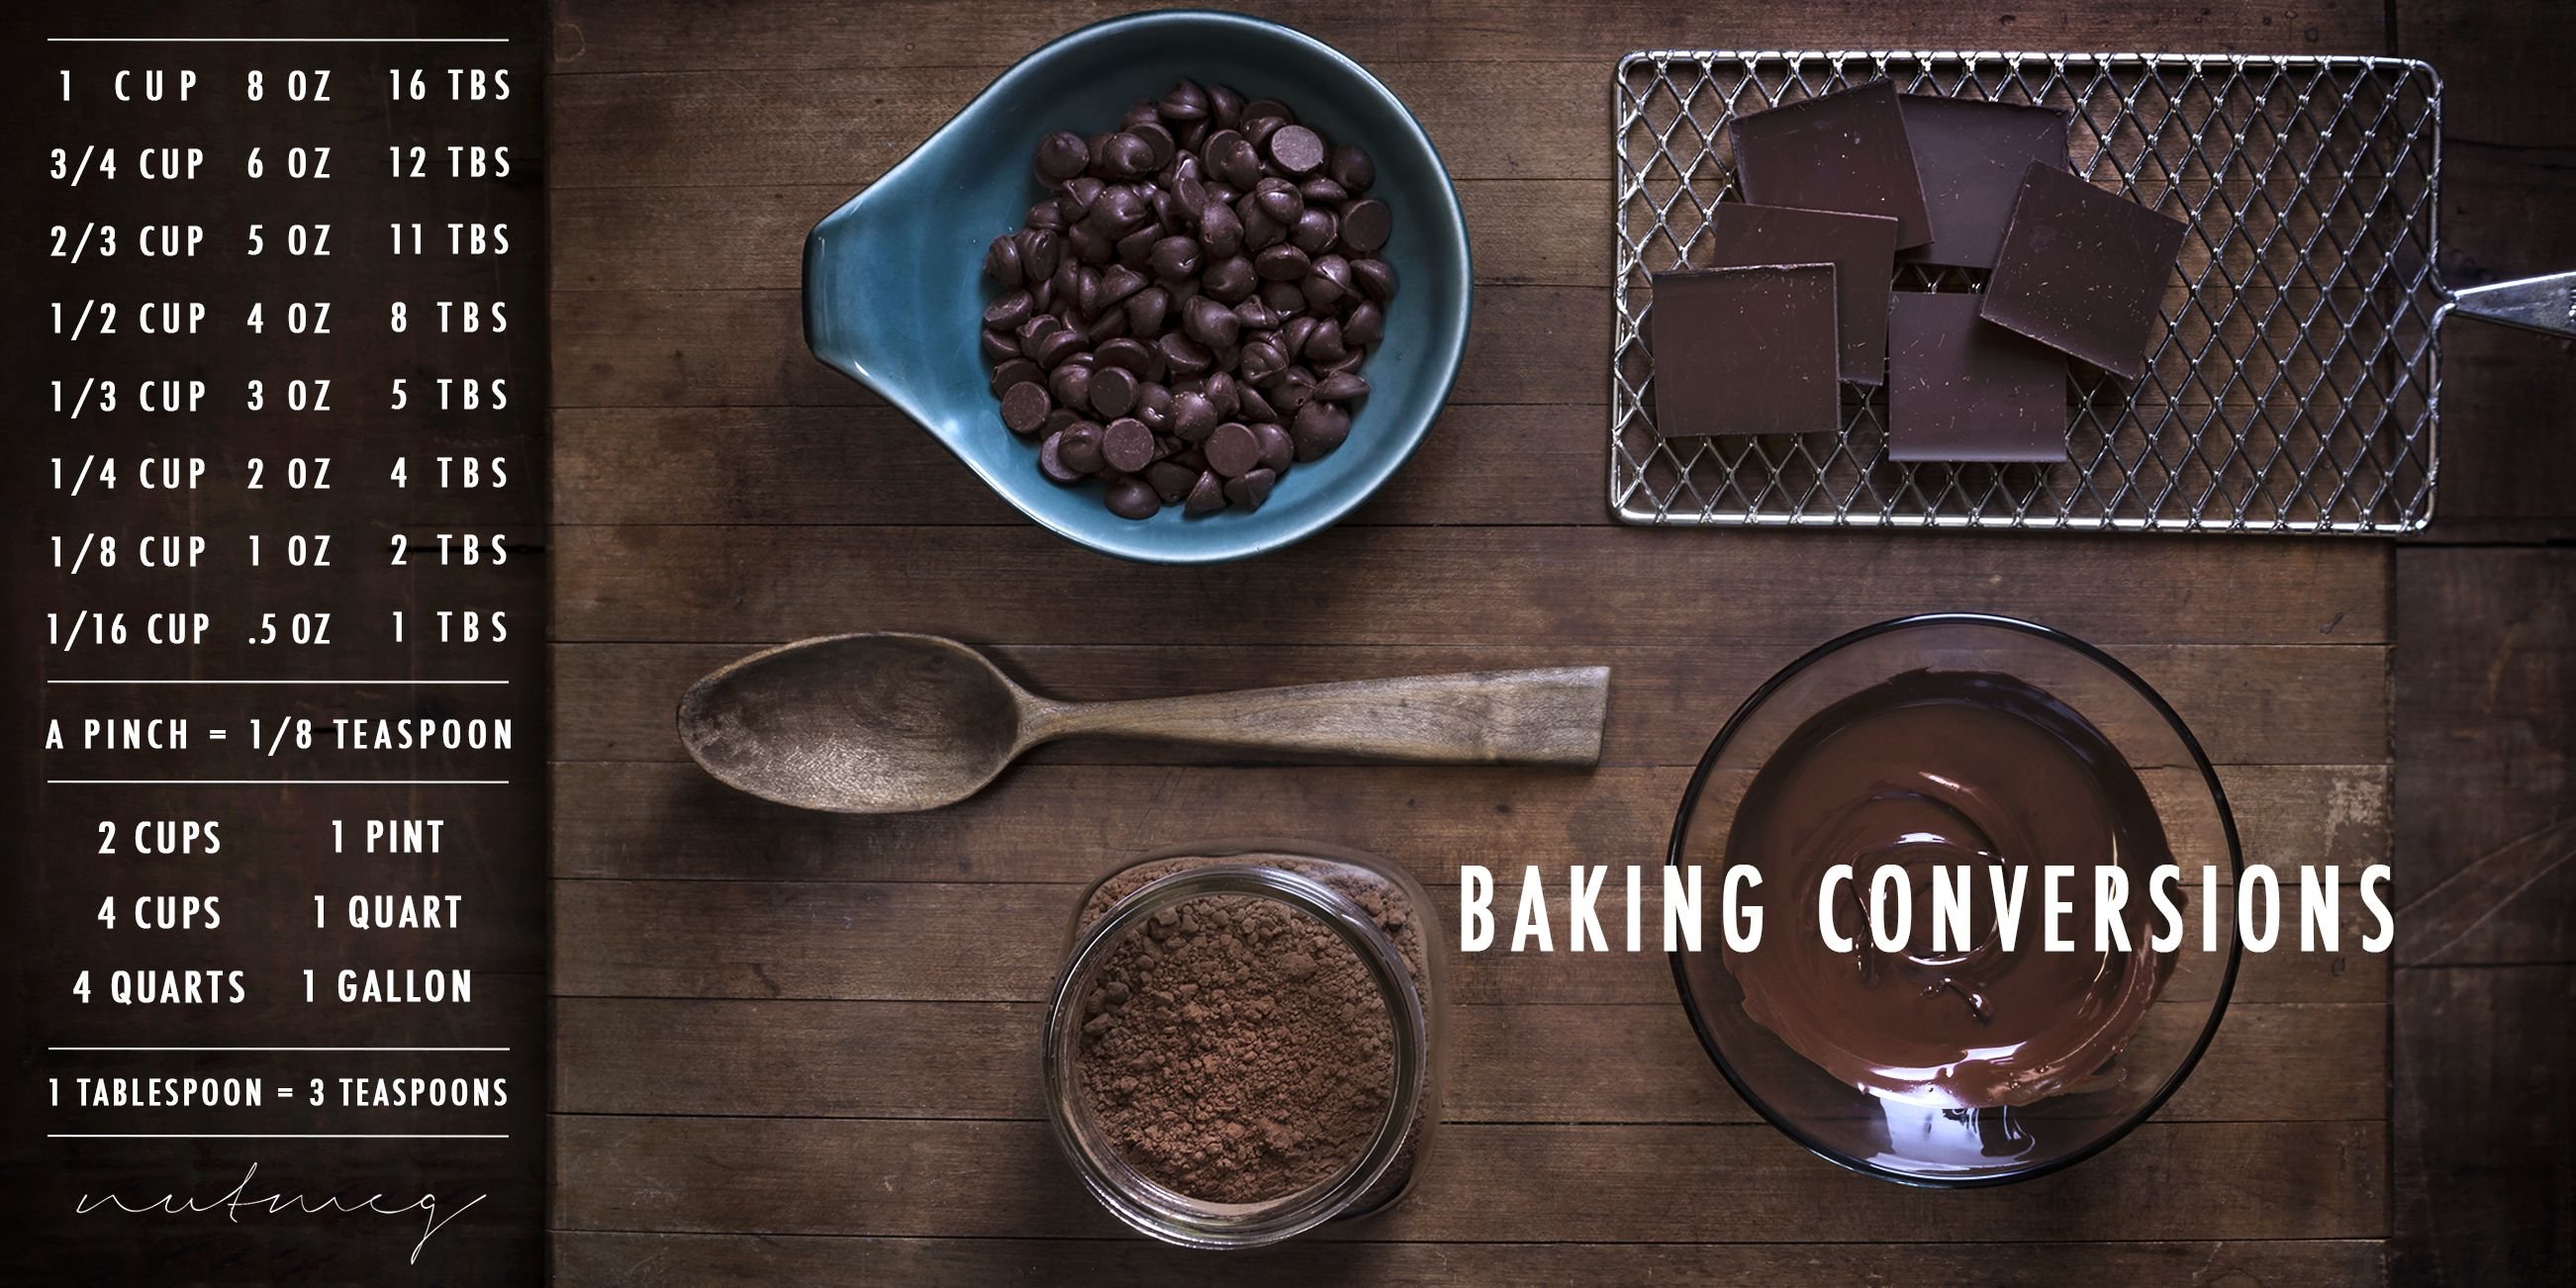 Baking Conversion chart - free download - Nutmeg Imageworks Food Photography, St. Petersburg, Fl.